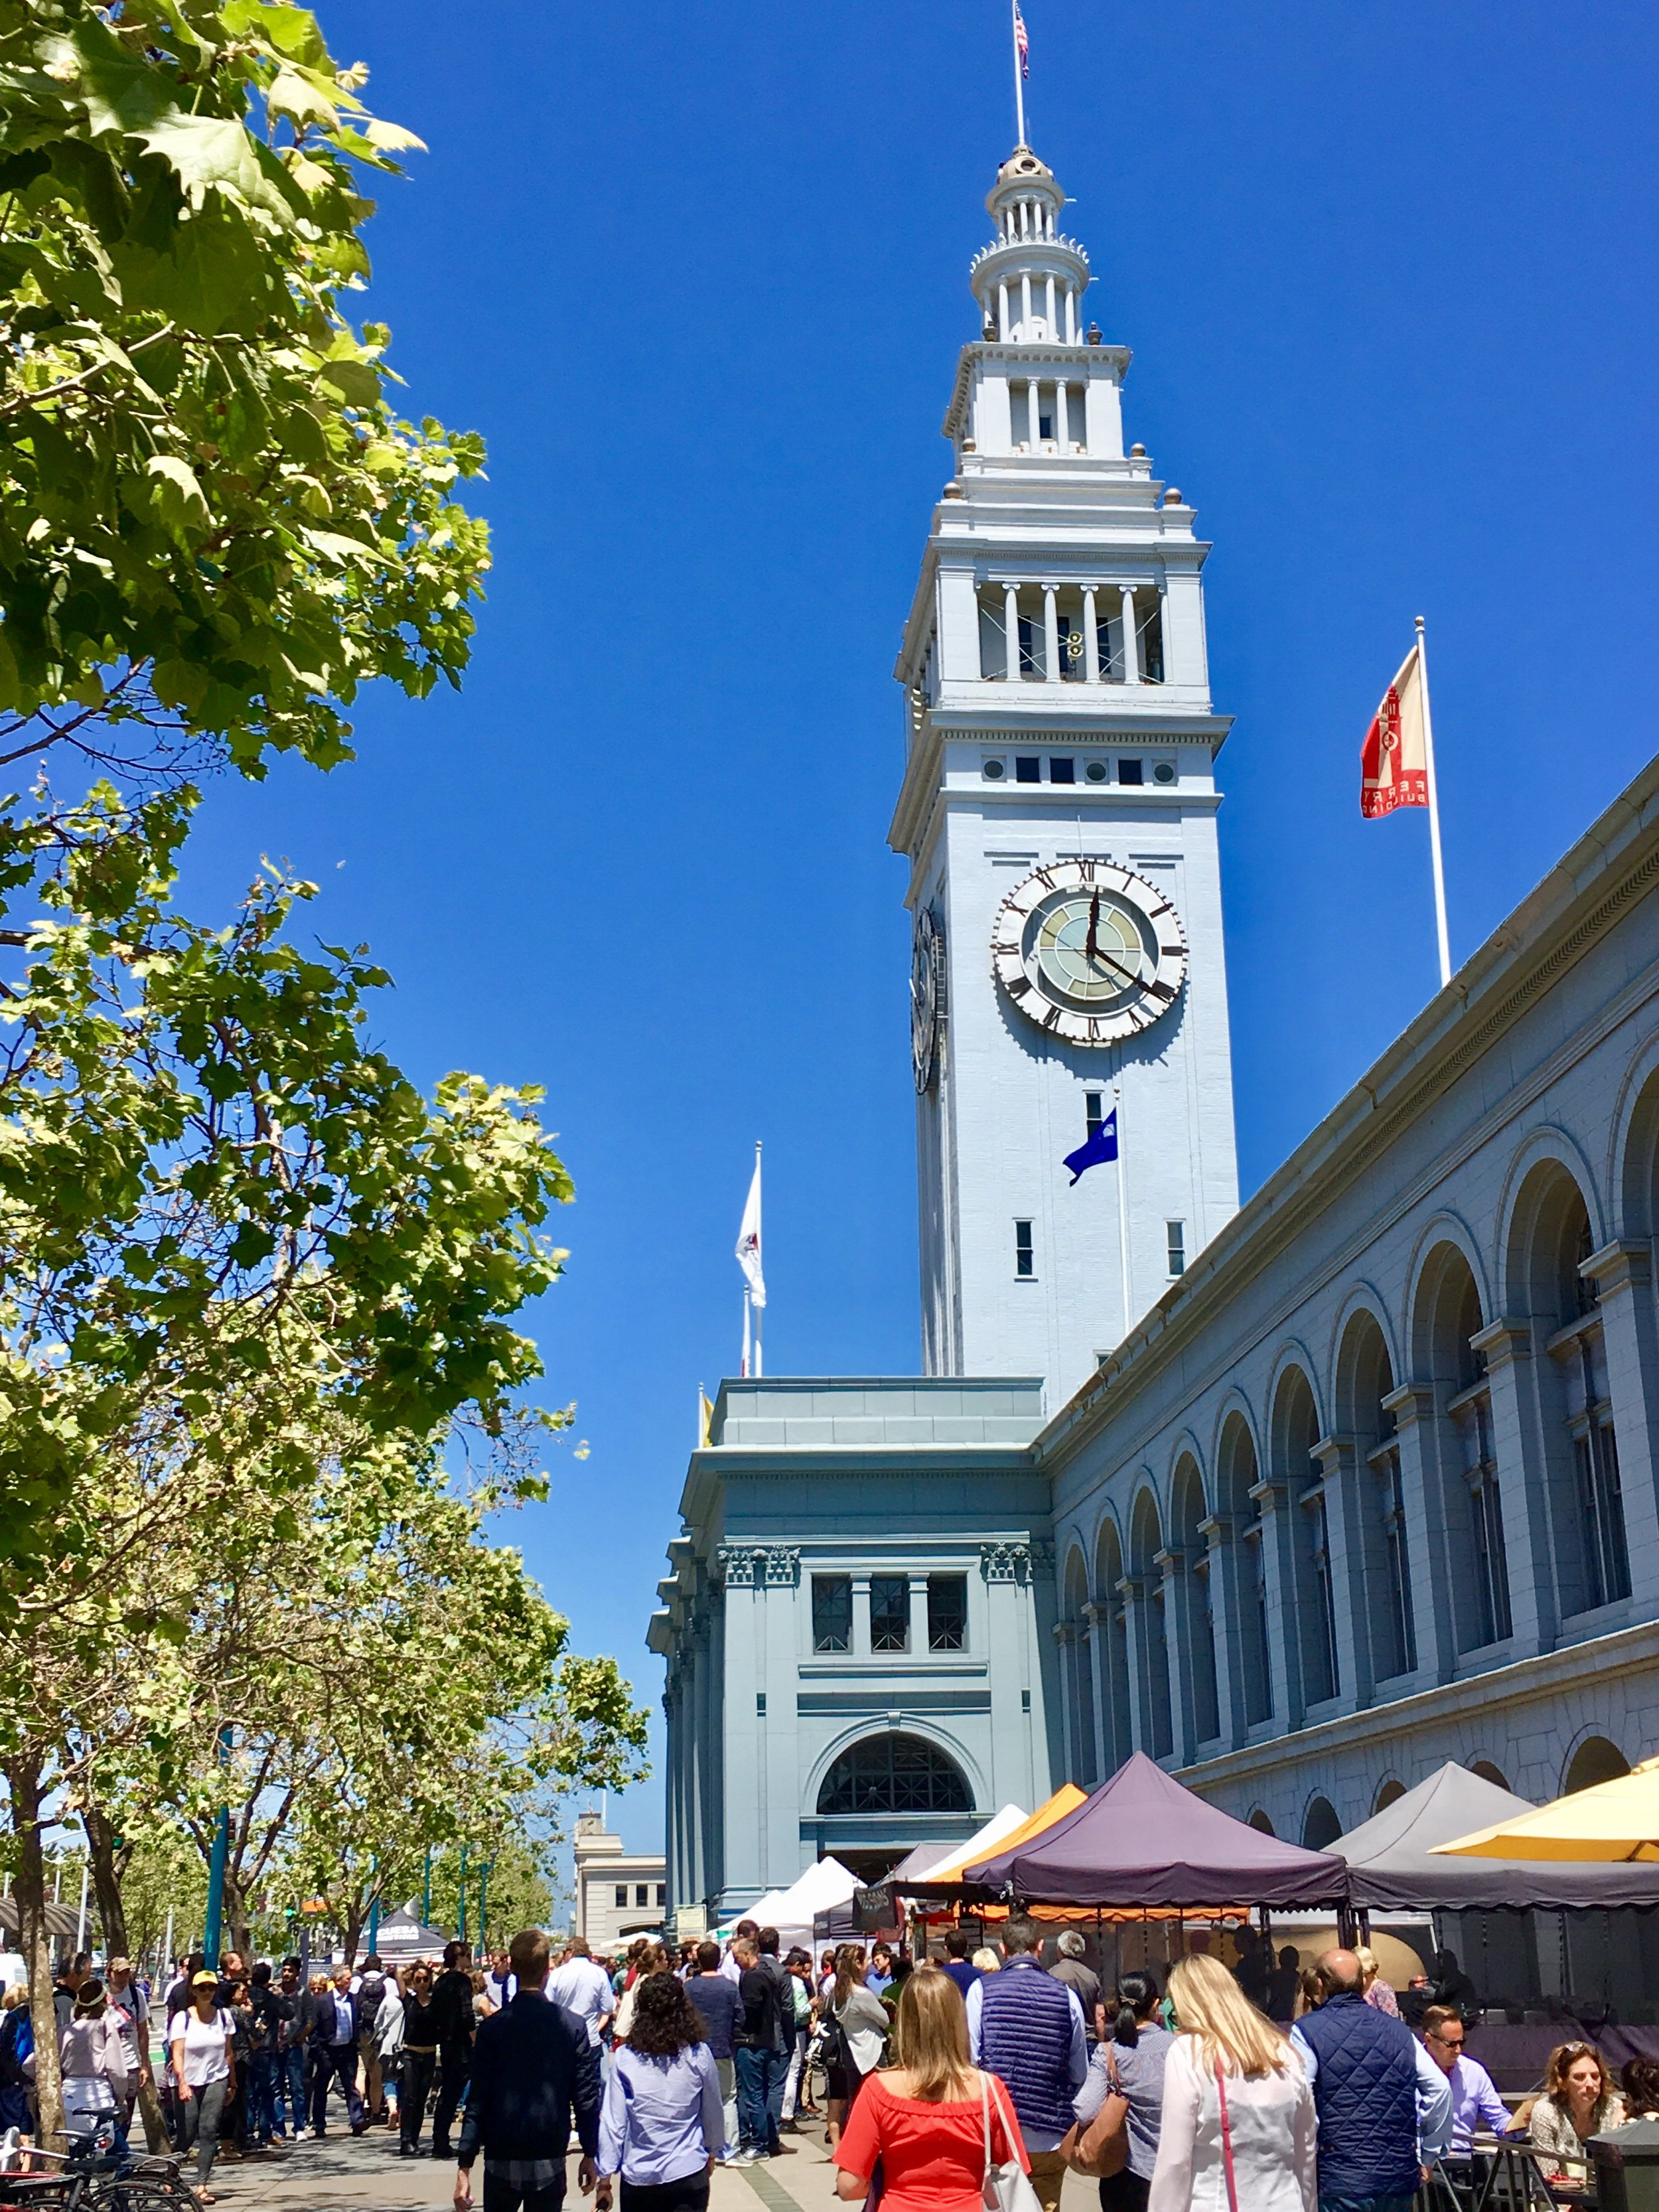 - MARKET LOCATION/HOURSAddress: One Ferry Building, San FranciscoThe Farmer's Market is open three days a week: Tuesday, Thursday 10 a.m. - 2 p.m.; and Saturday 8 a.m. - 2 p.m.The Ferry Building is open Monday-Friday 10 a.m. to 7 p.m.; Saturday 8 a.m. - 6 p.m., Sunday 11 a.m. - 5 p.m.